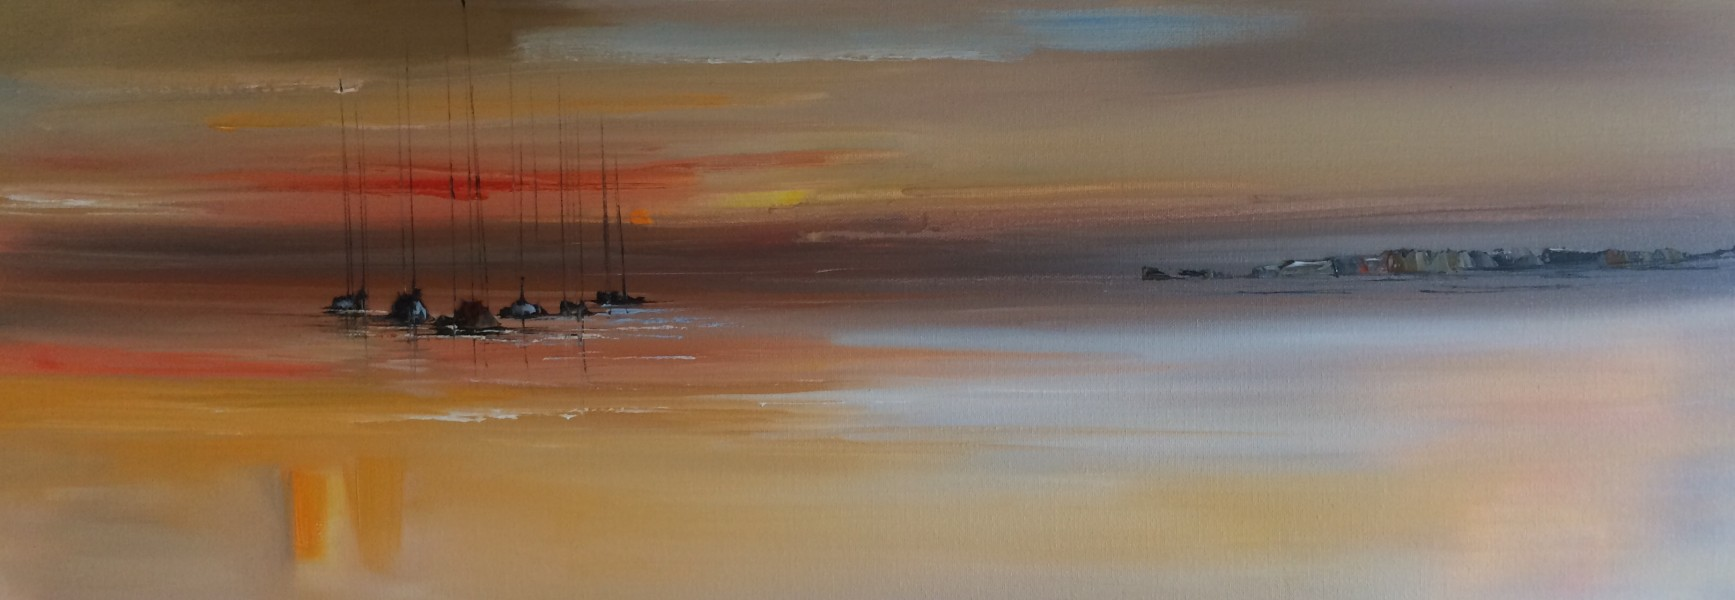 sundown&stillwaters80x30